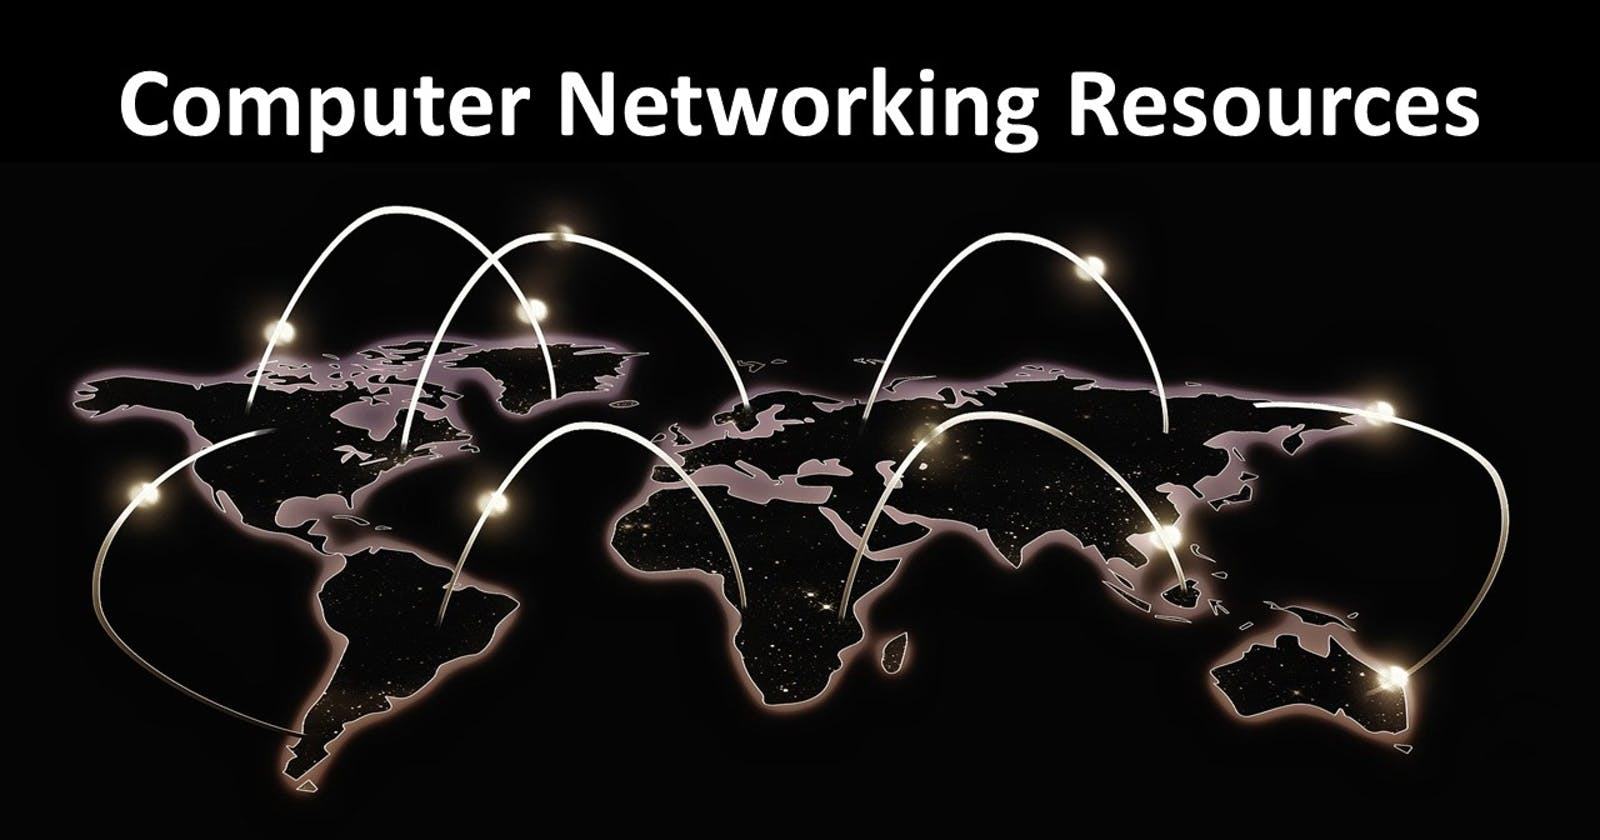 8 Computer Networking Resources for All Levels